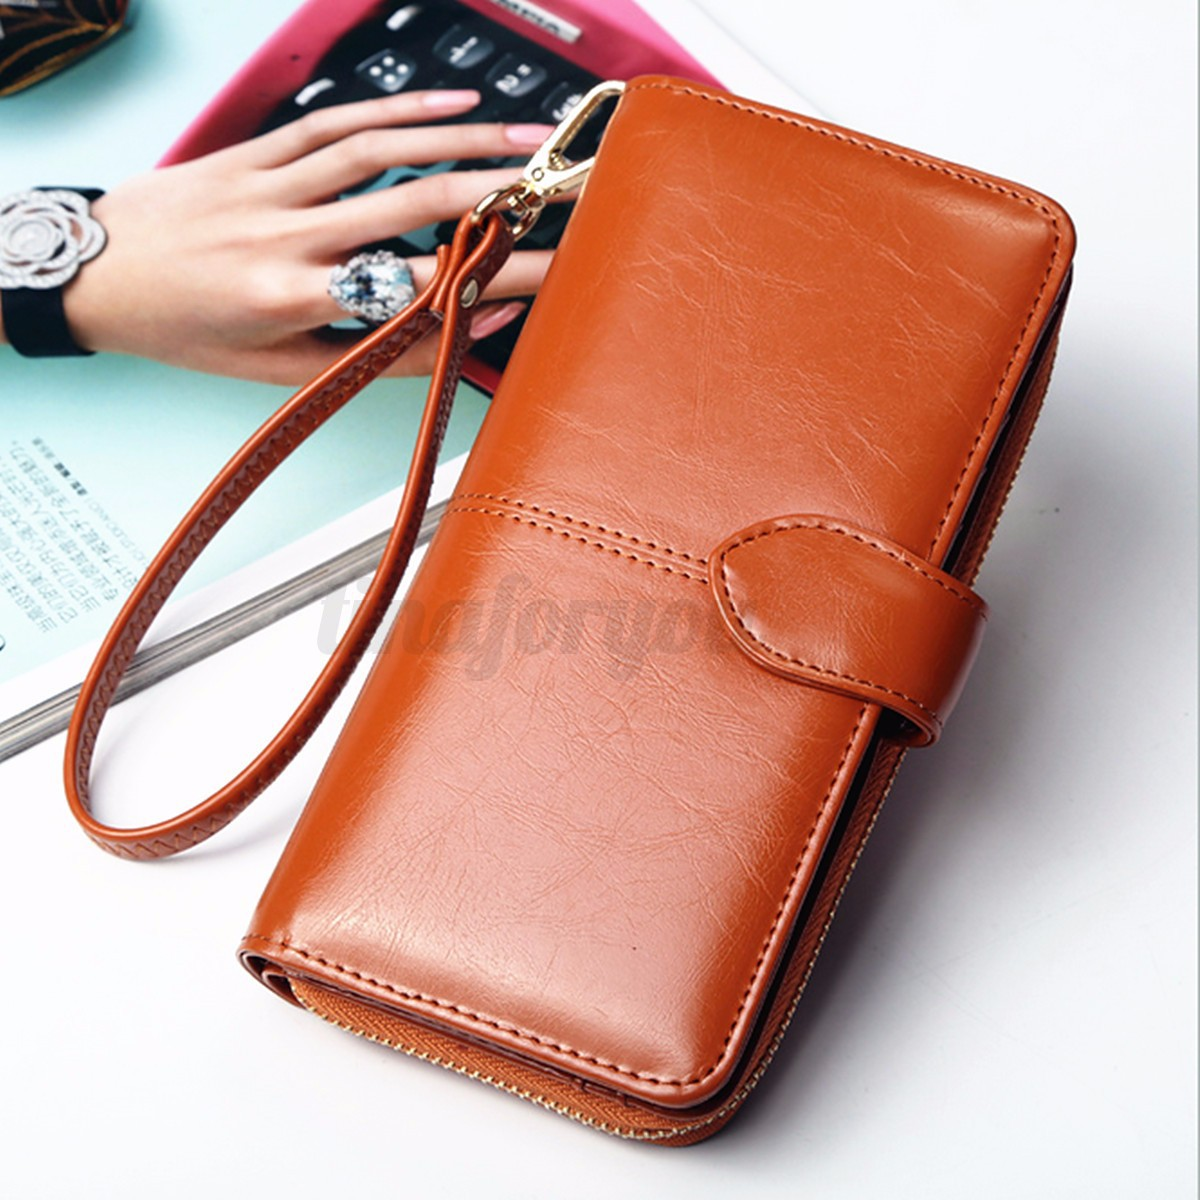 Fashion Lady Women Leather Wallet Long Zip Purse Card Holder Case Clutch Handbag